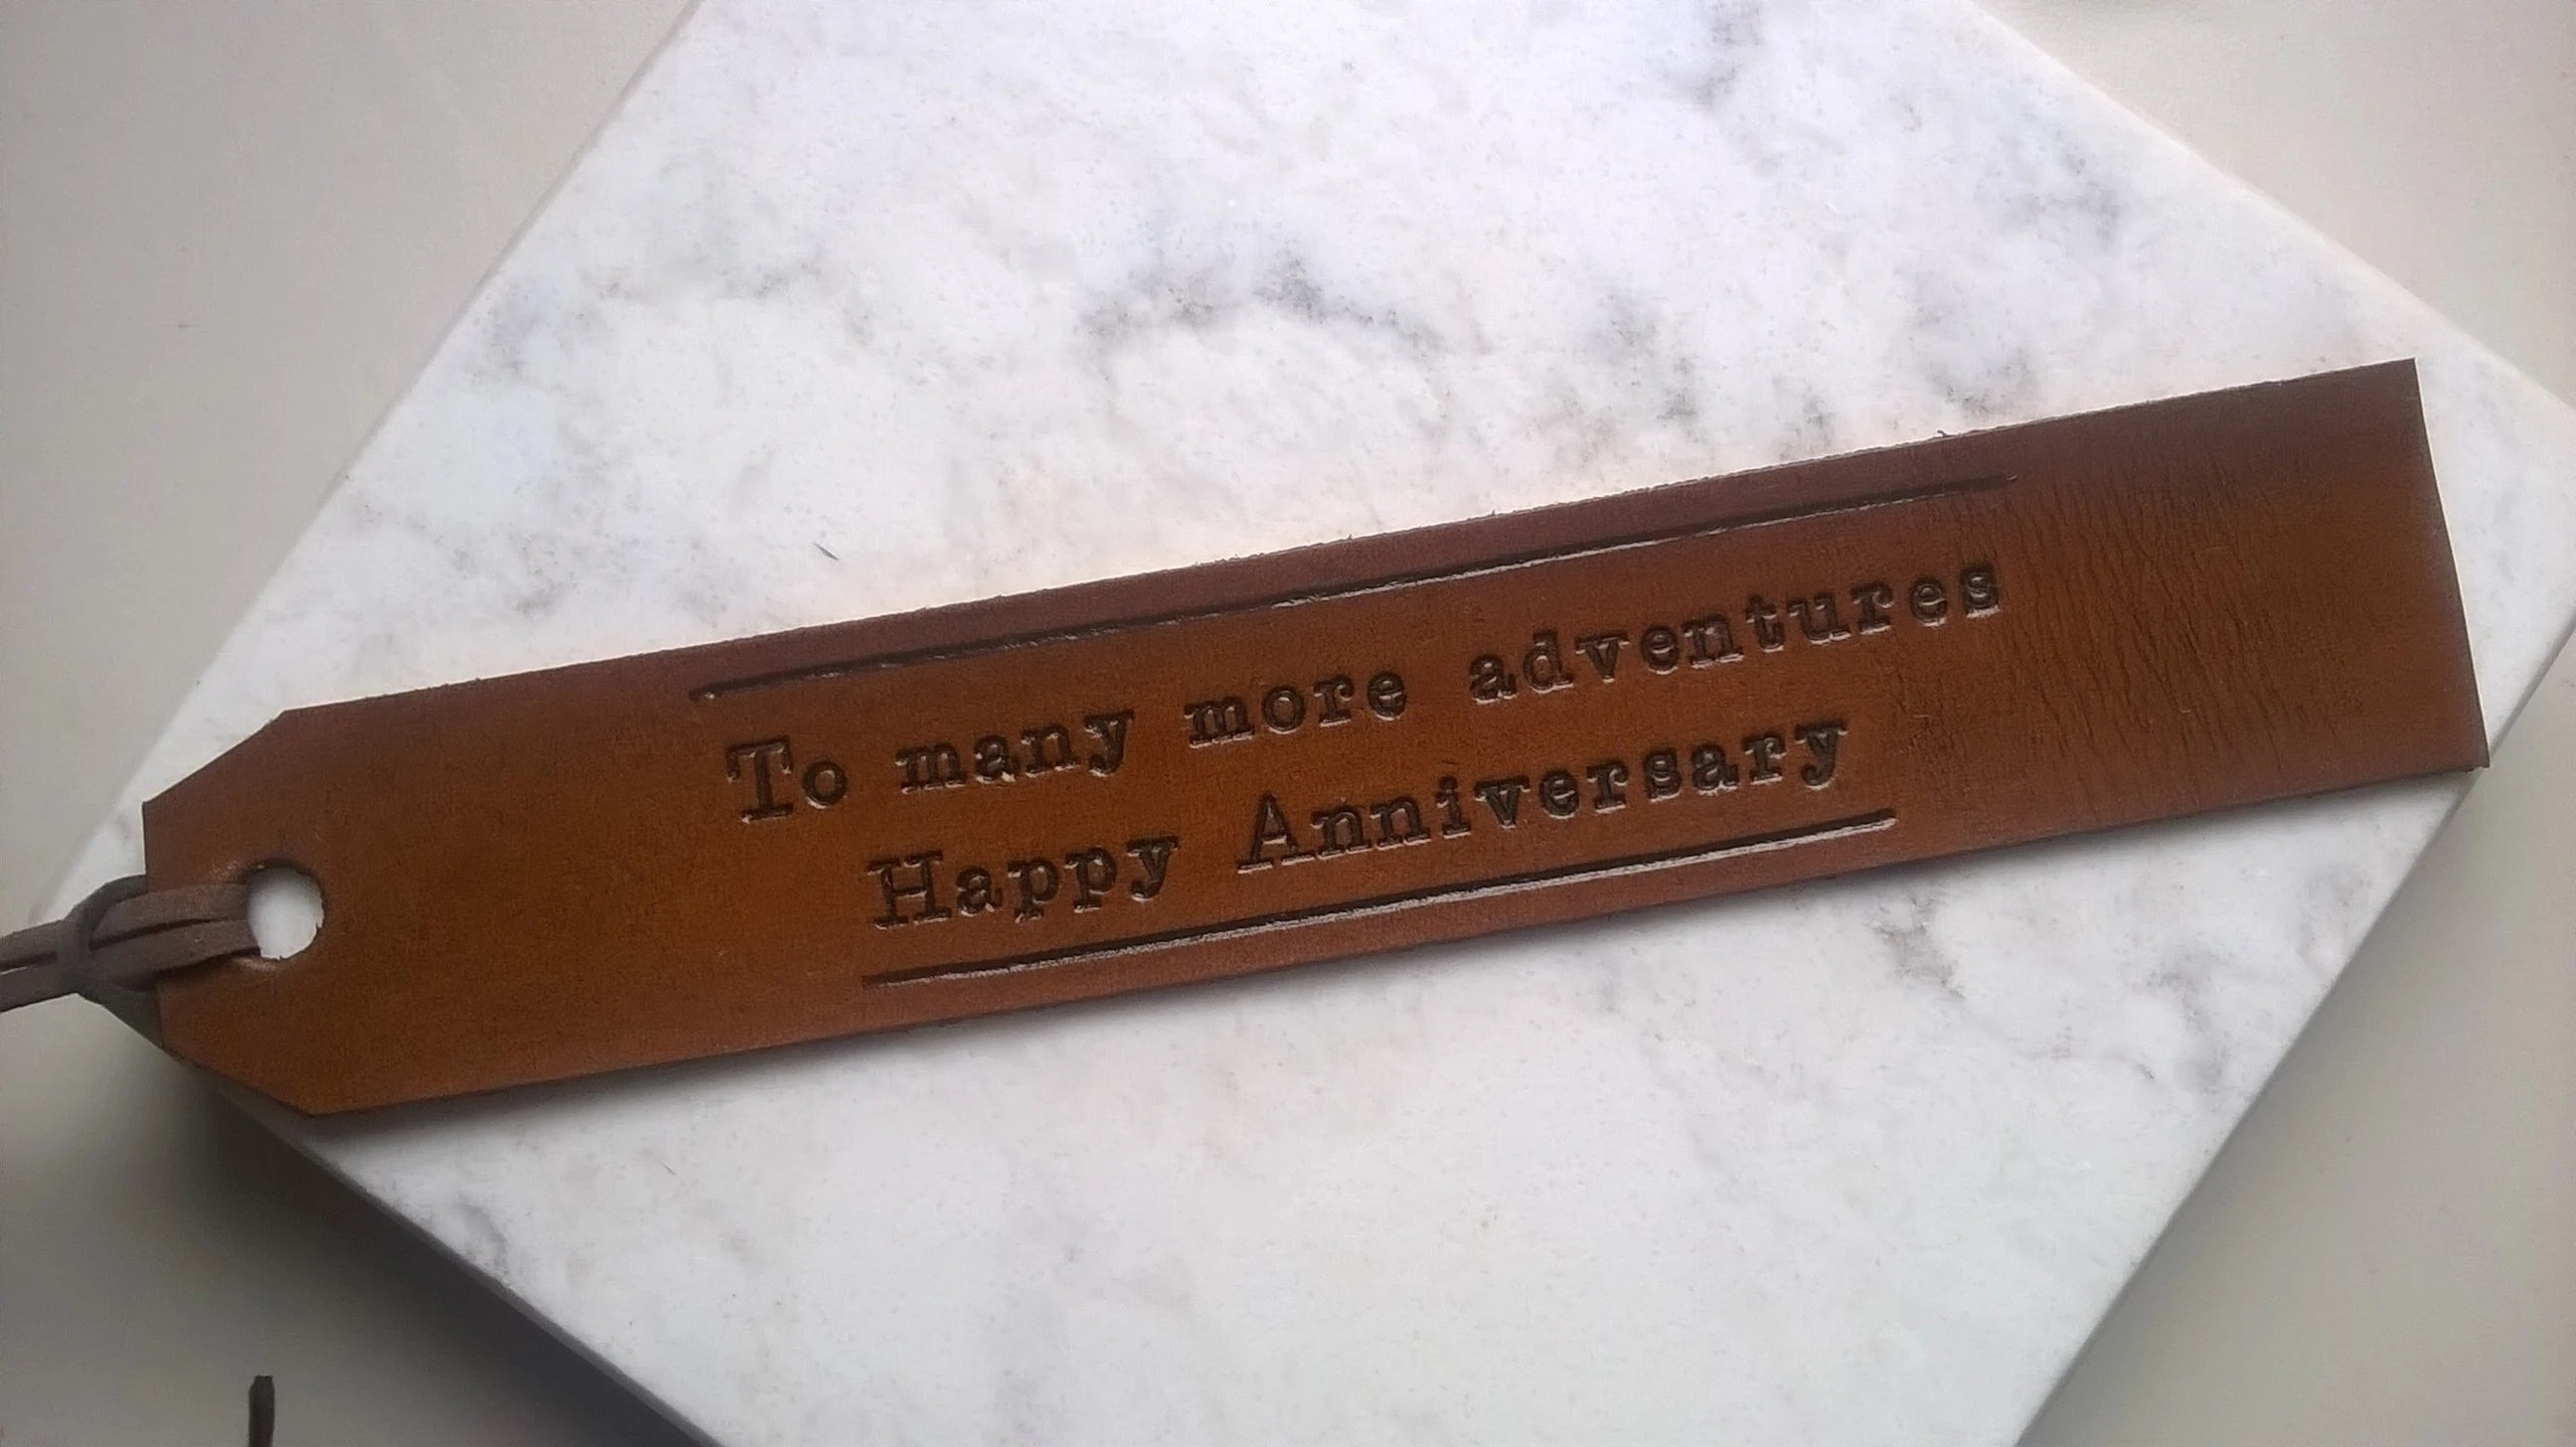 3rd Anniversary  Long Text  Personalized Leather Bookmark image 3